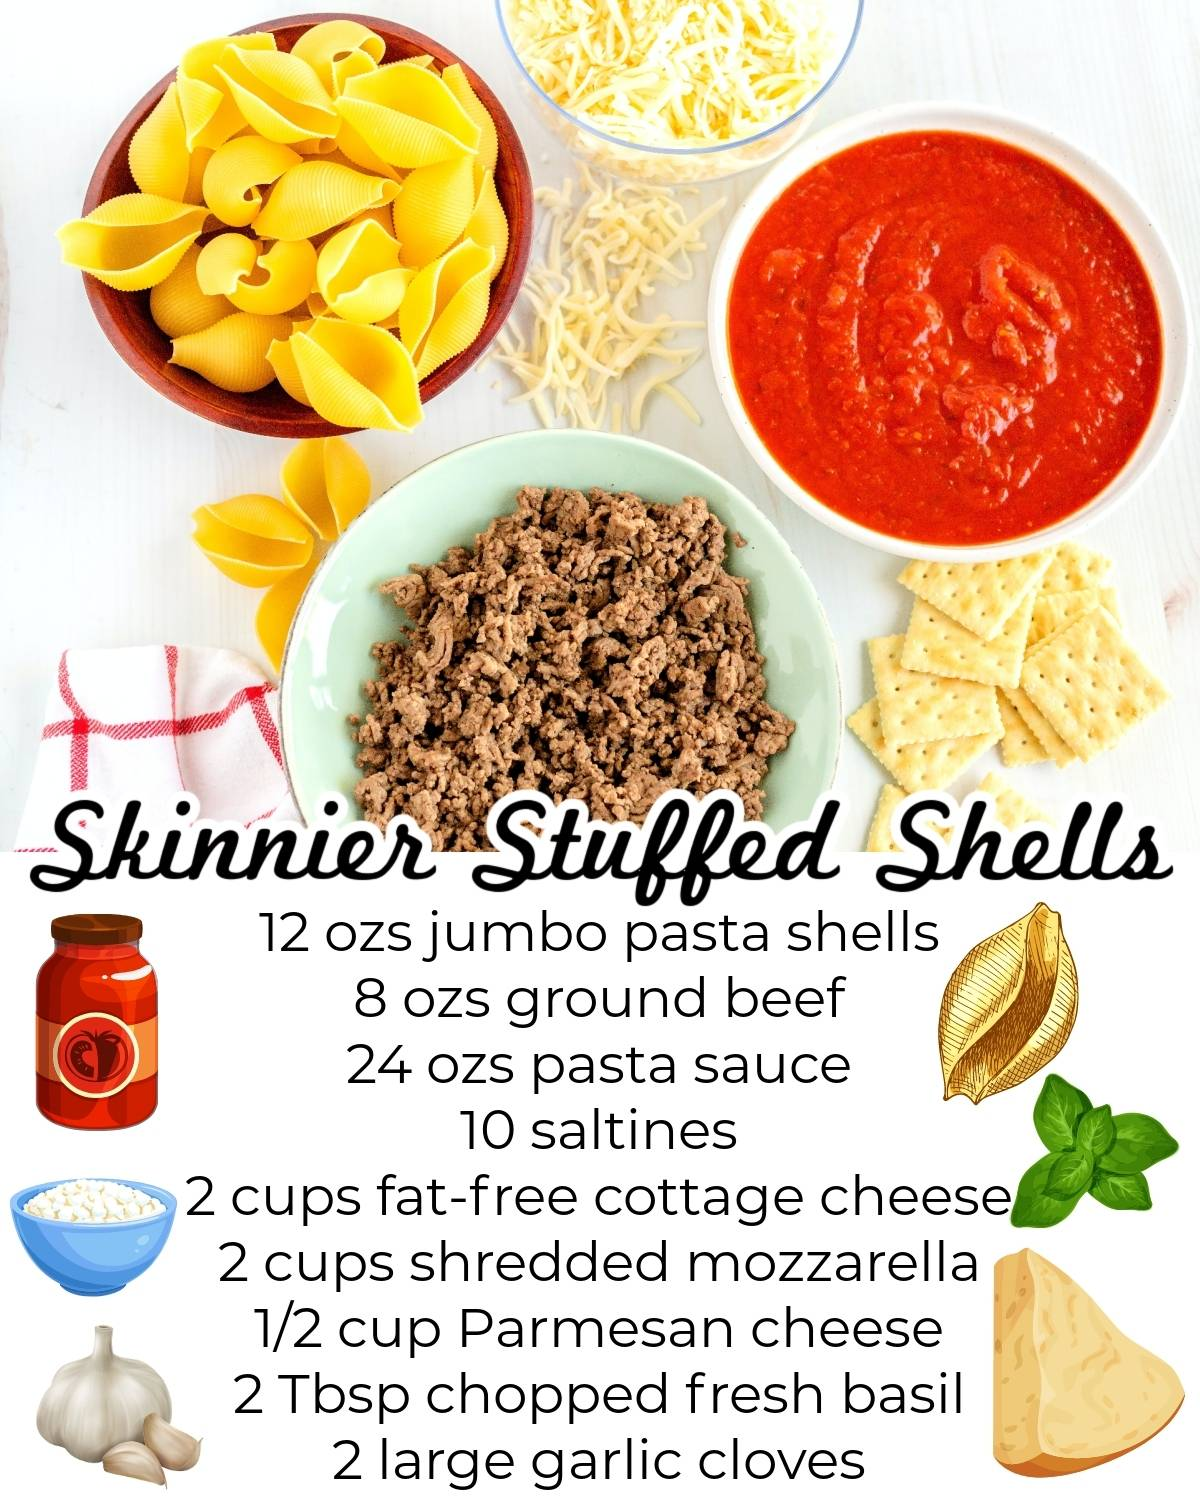 All of the ingredients needed to make this stuffed shells recipe without ricotta cheese.